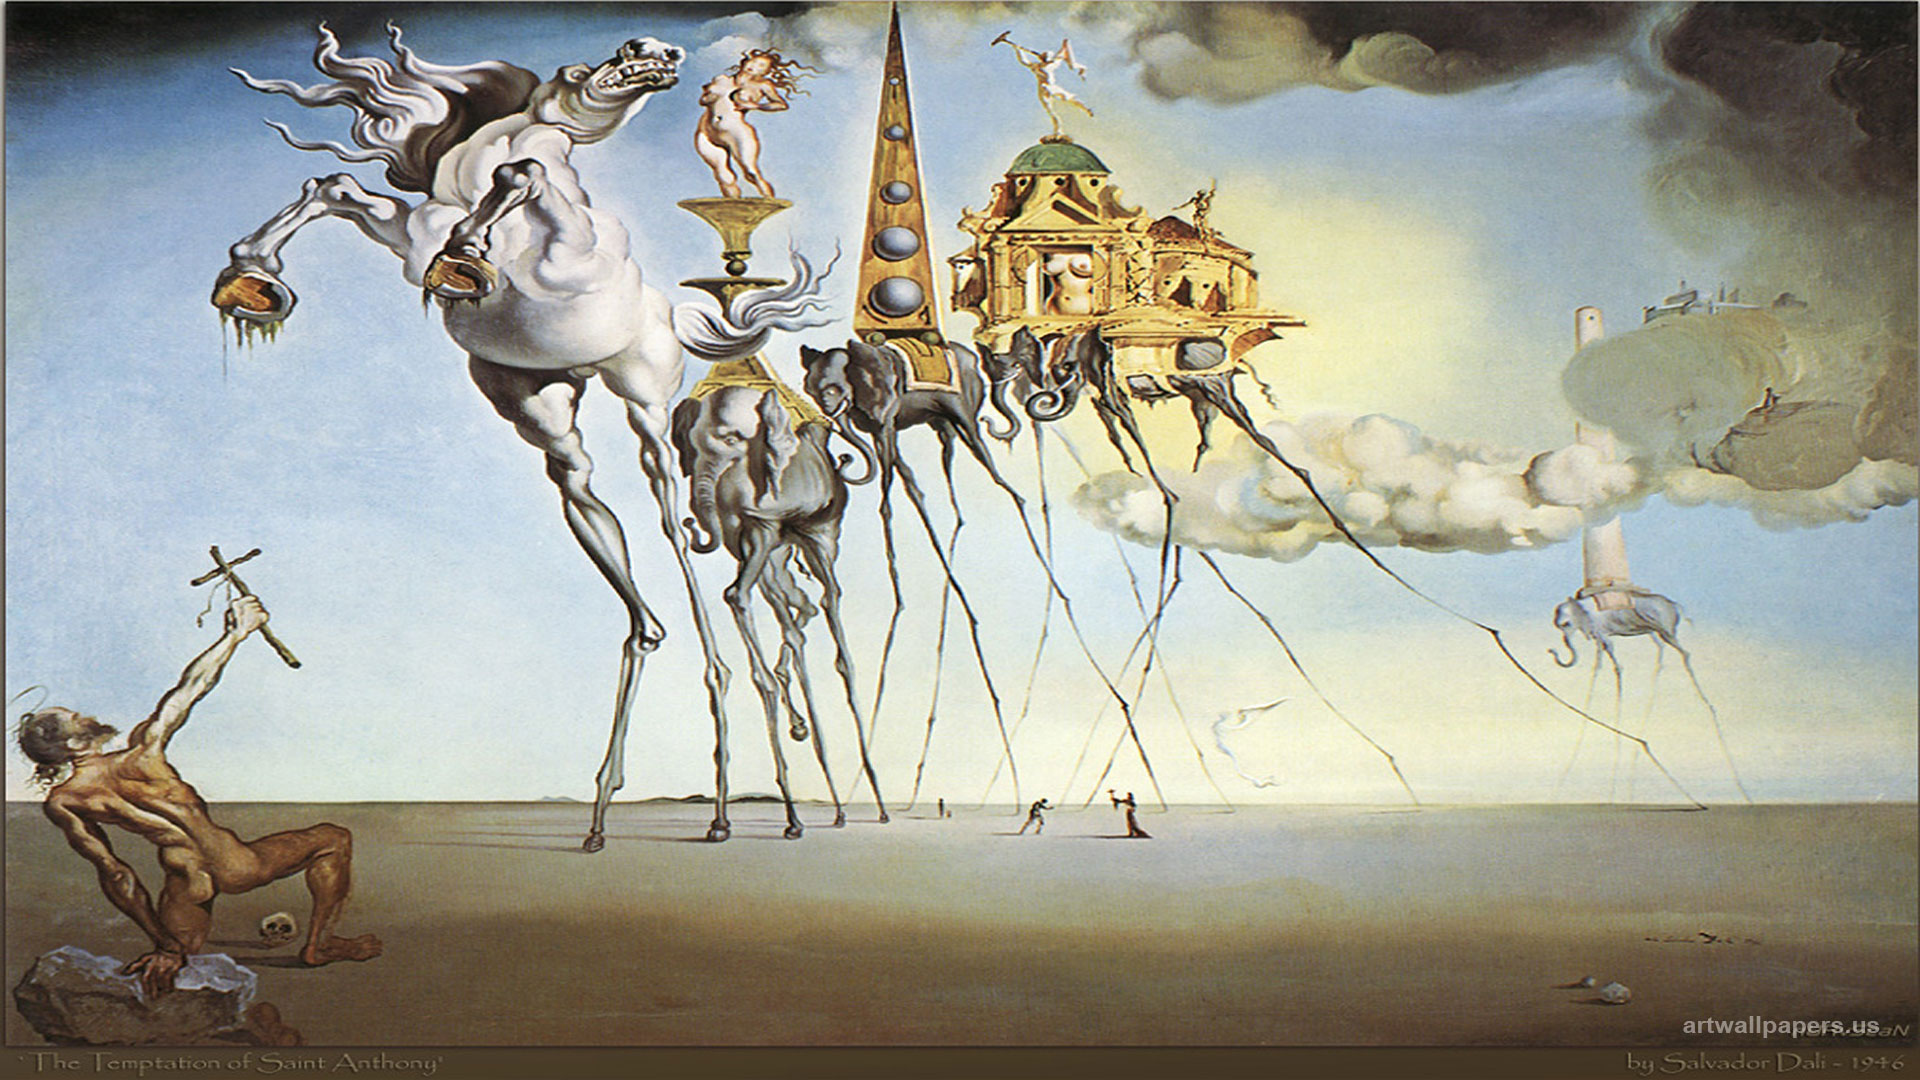 the role of salvado dali in the spread of surrealism It began with two computers and then it spread out to a several other systems they all play an important role in that ant colony as a whole.